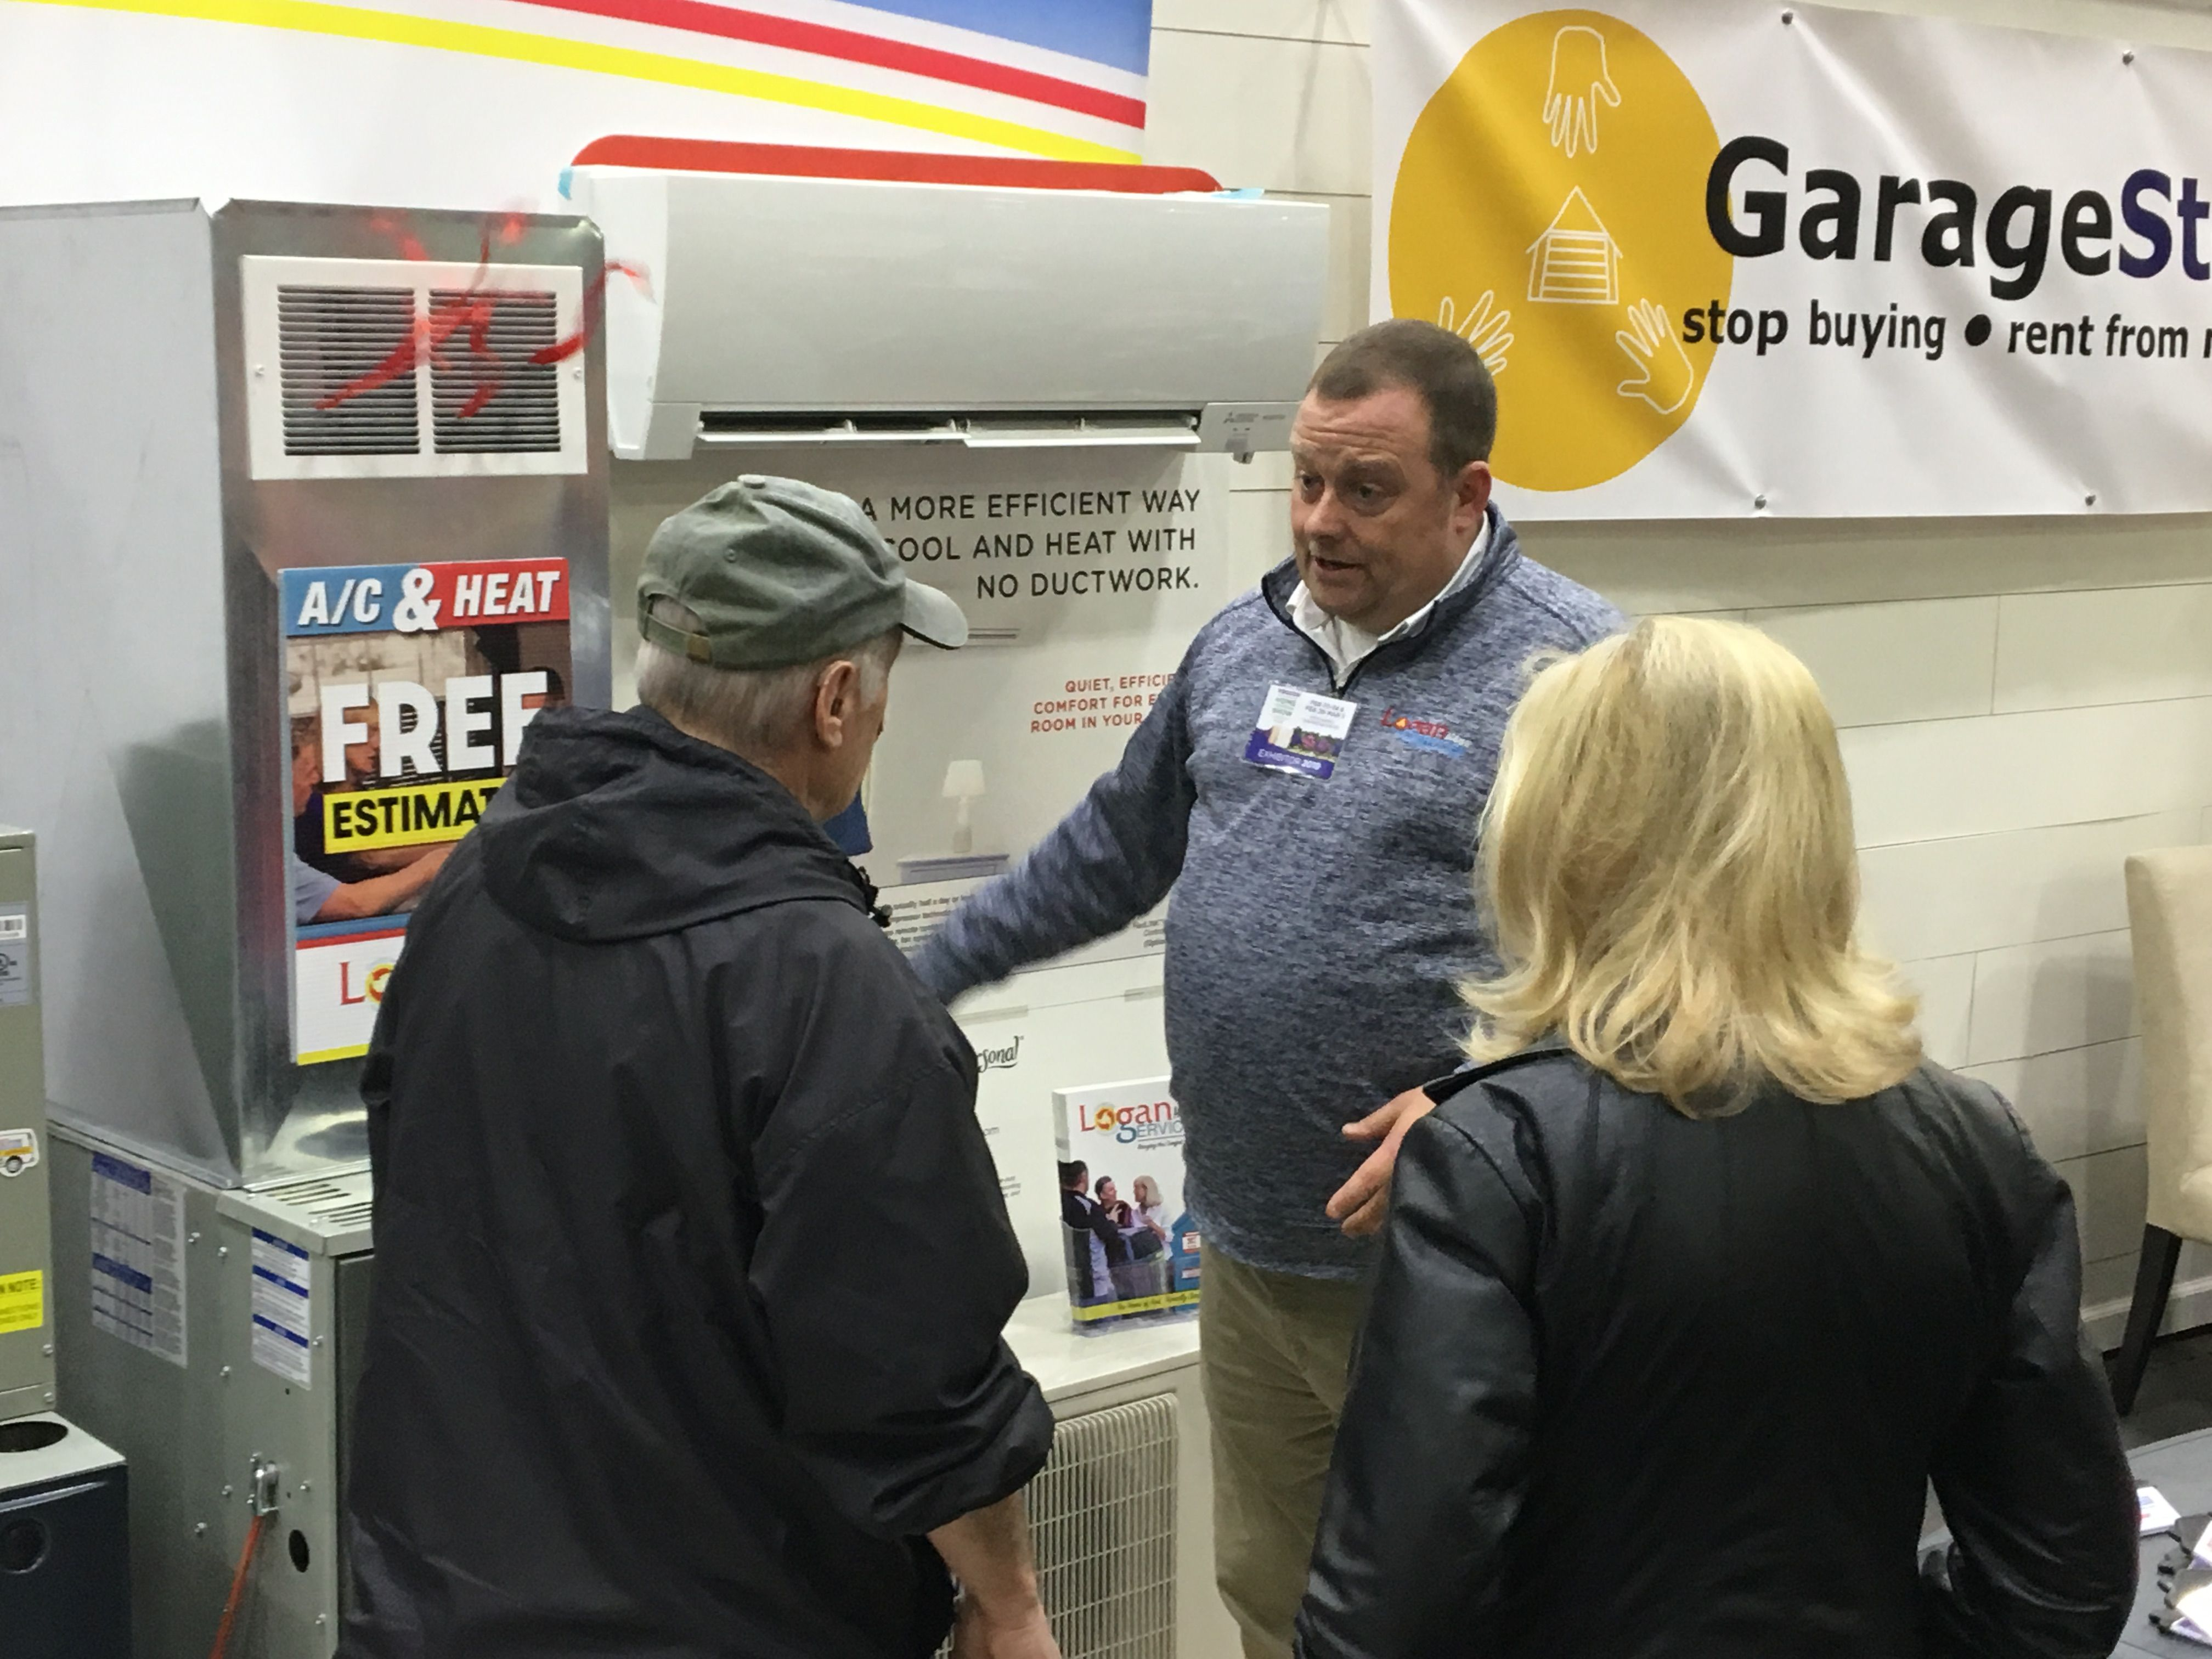 Get Home Improvement Ideas At The 2020 Home Shows in 2020